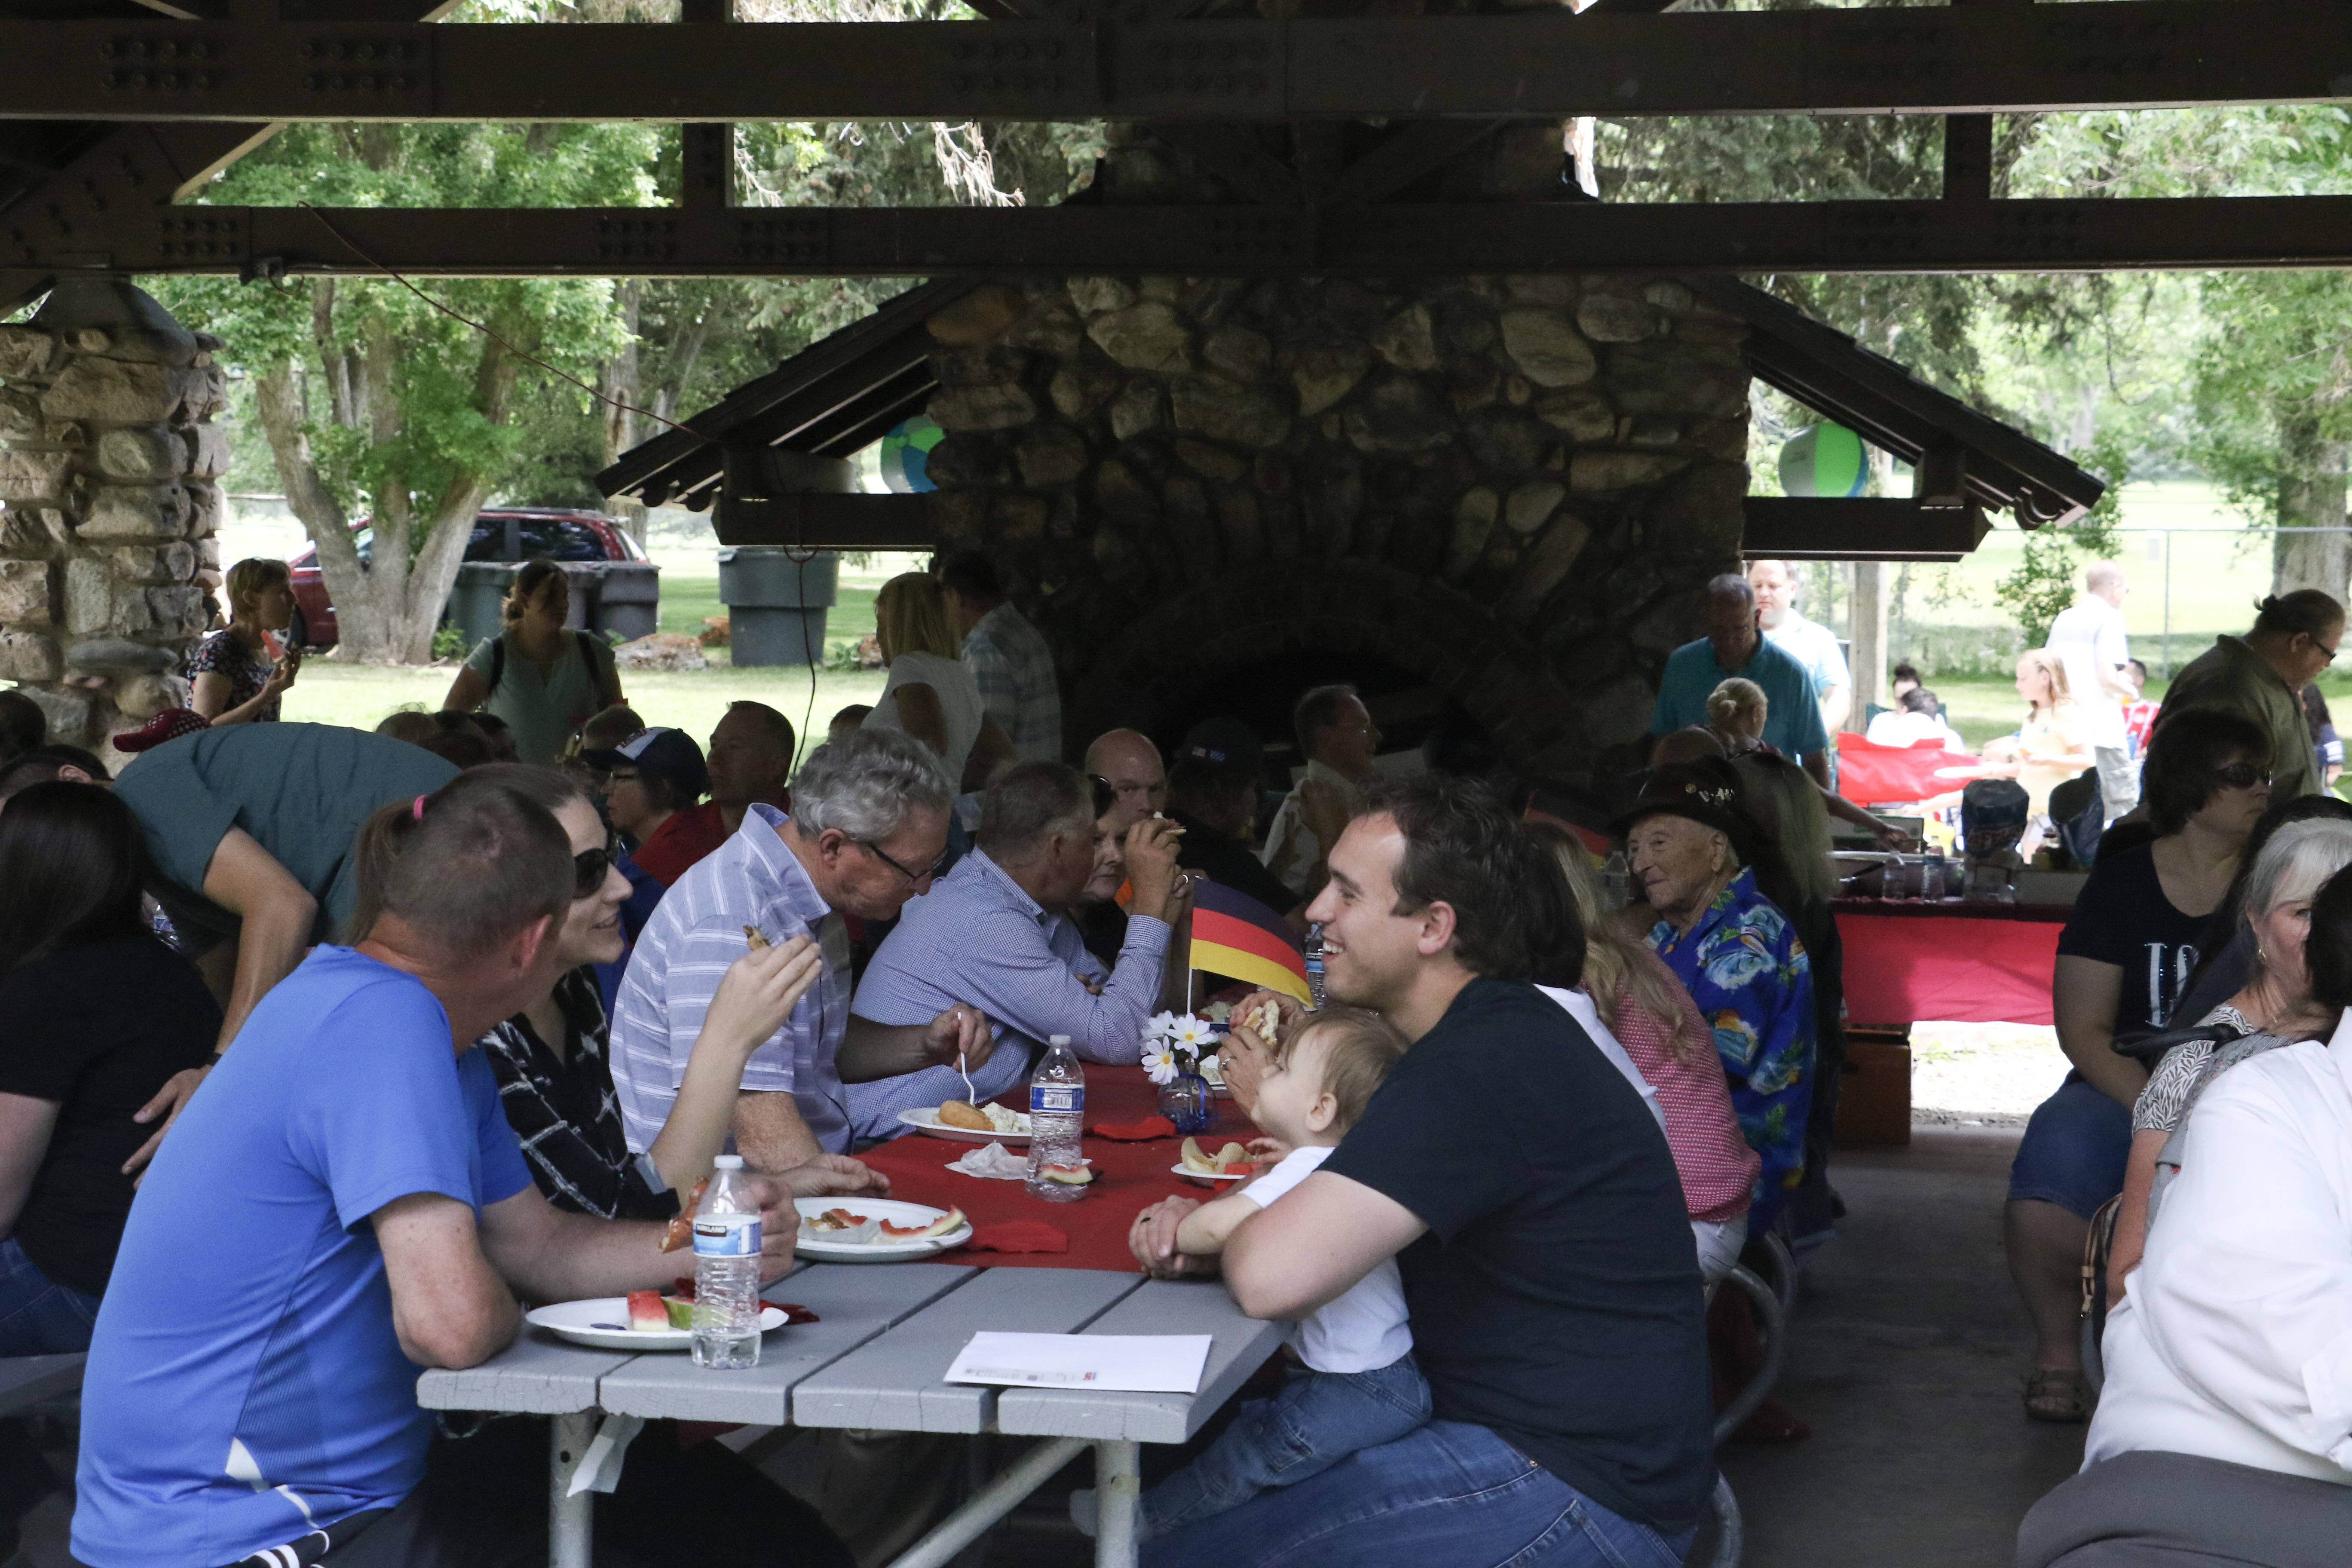 Members of the German Speaking Ward — along with their family and friends — attend the annual ward picnic at Washington Terrace Park in Parley's Canyon, Utah, on July 13, 2019.